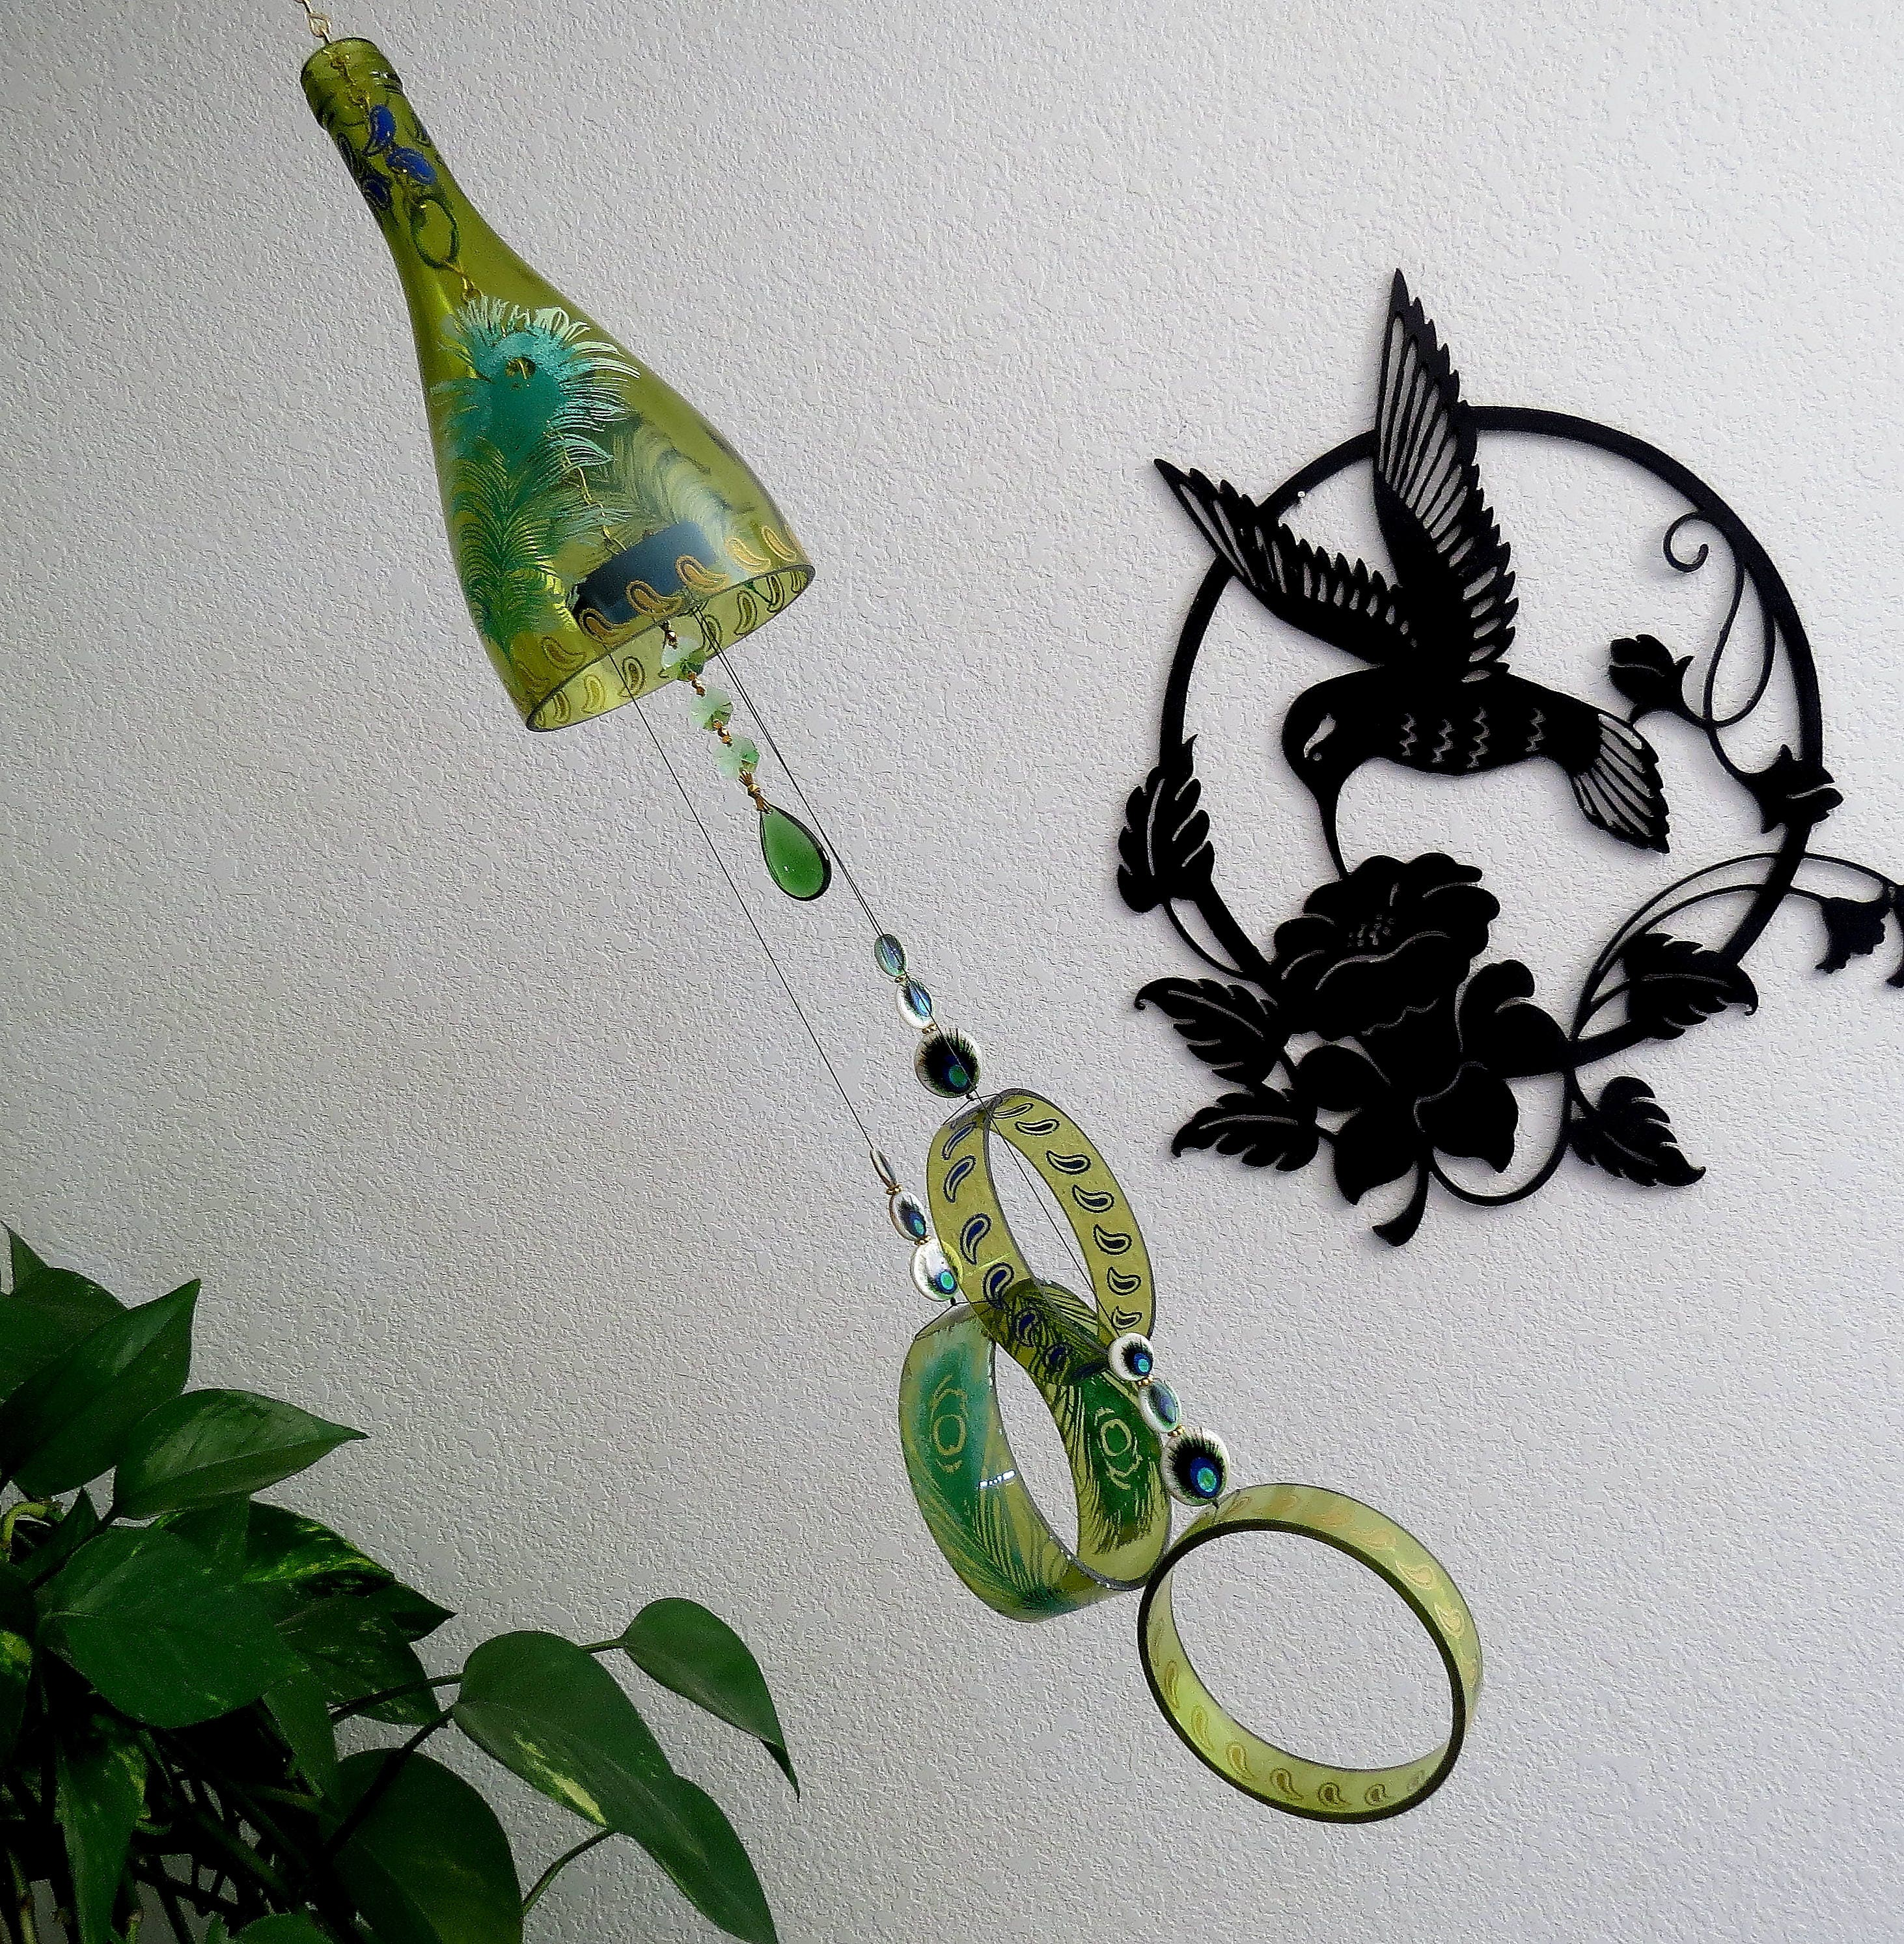 Large Wine Bottle Wind Chime, Yard Art, Patio Decor, Recycled Wine Bottle,  Peacock Feathers, Amber Glass, Wind Chime, Green Feathers